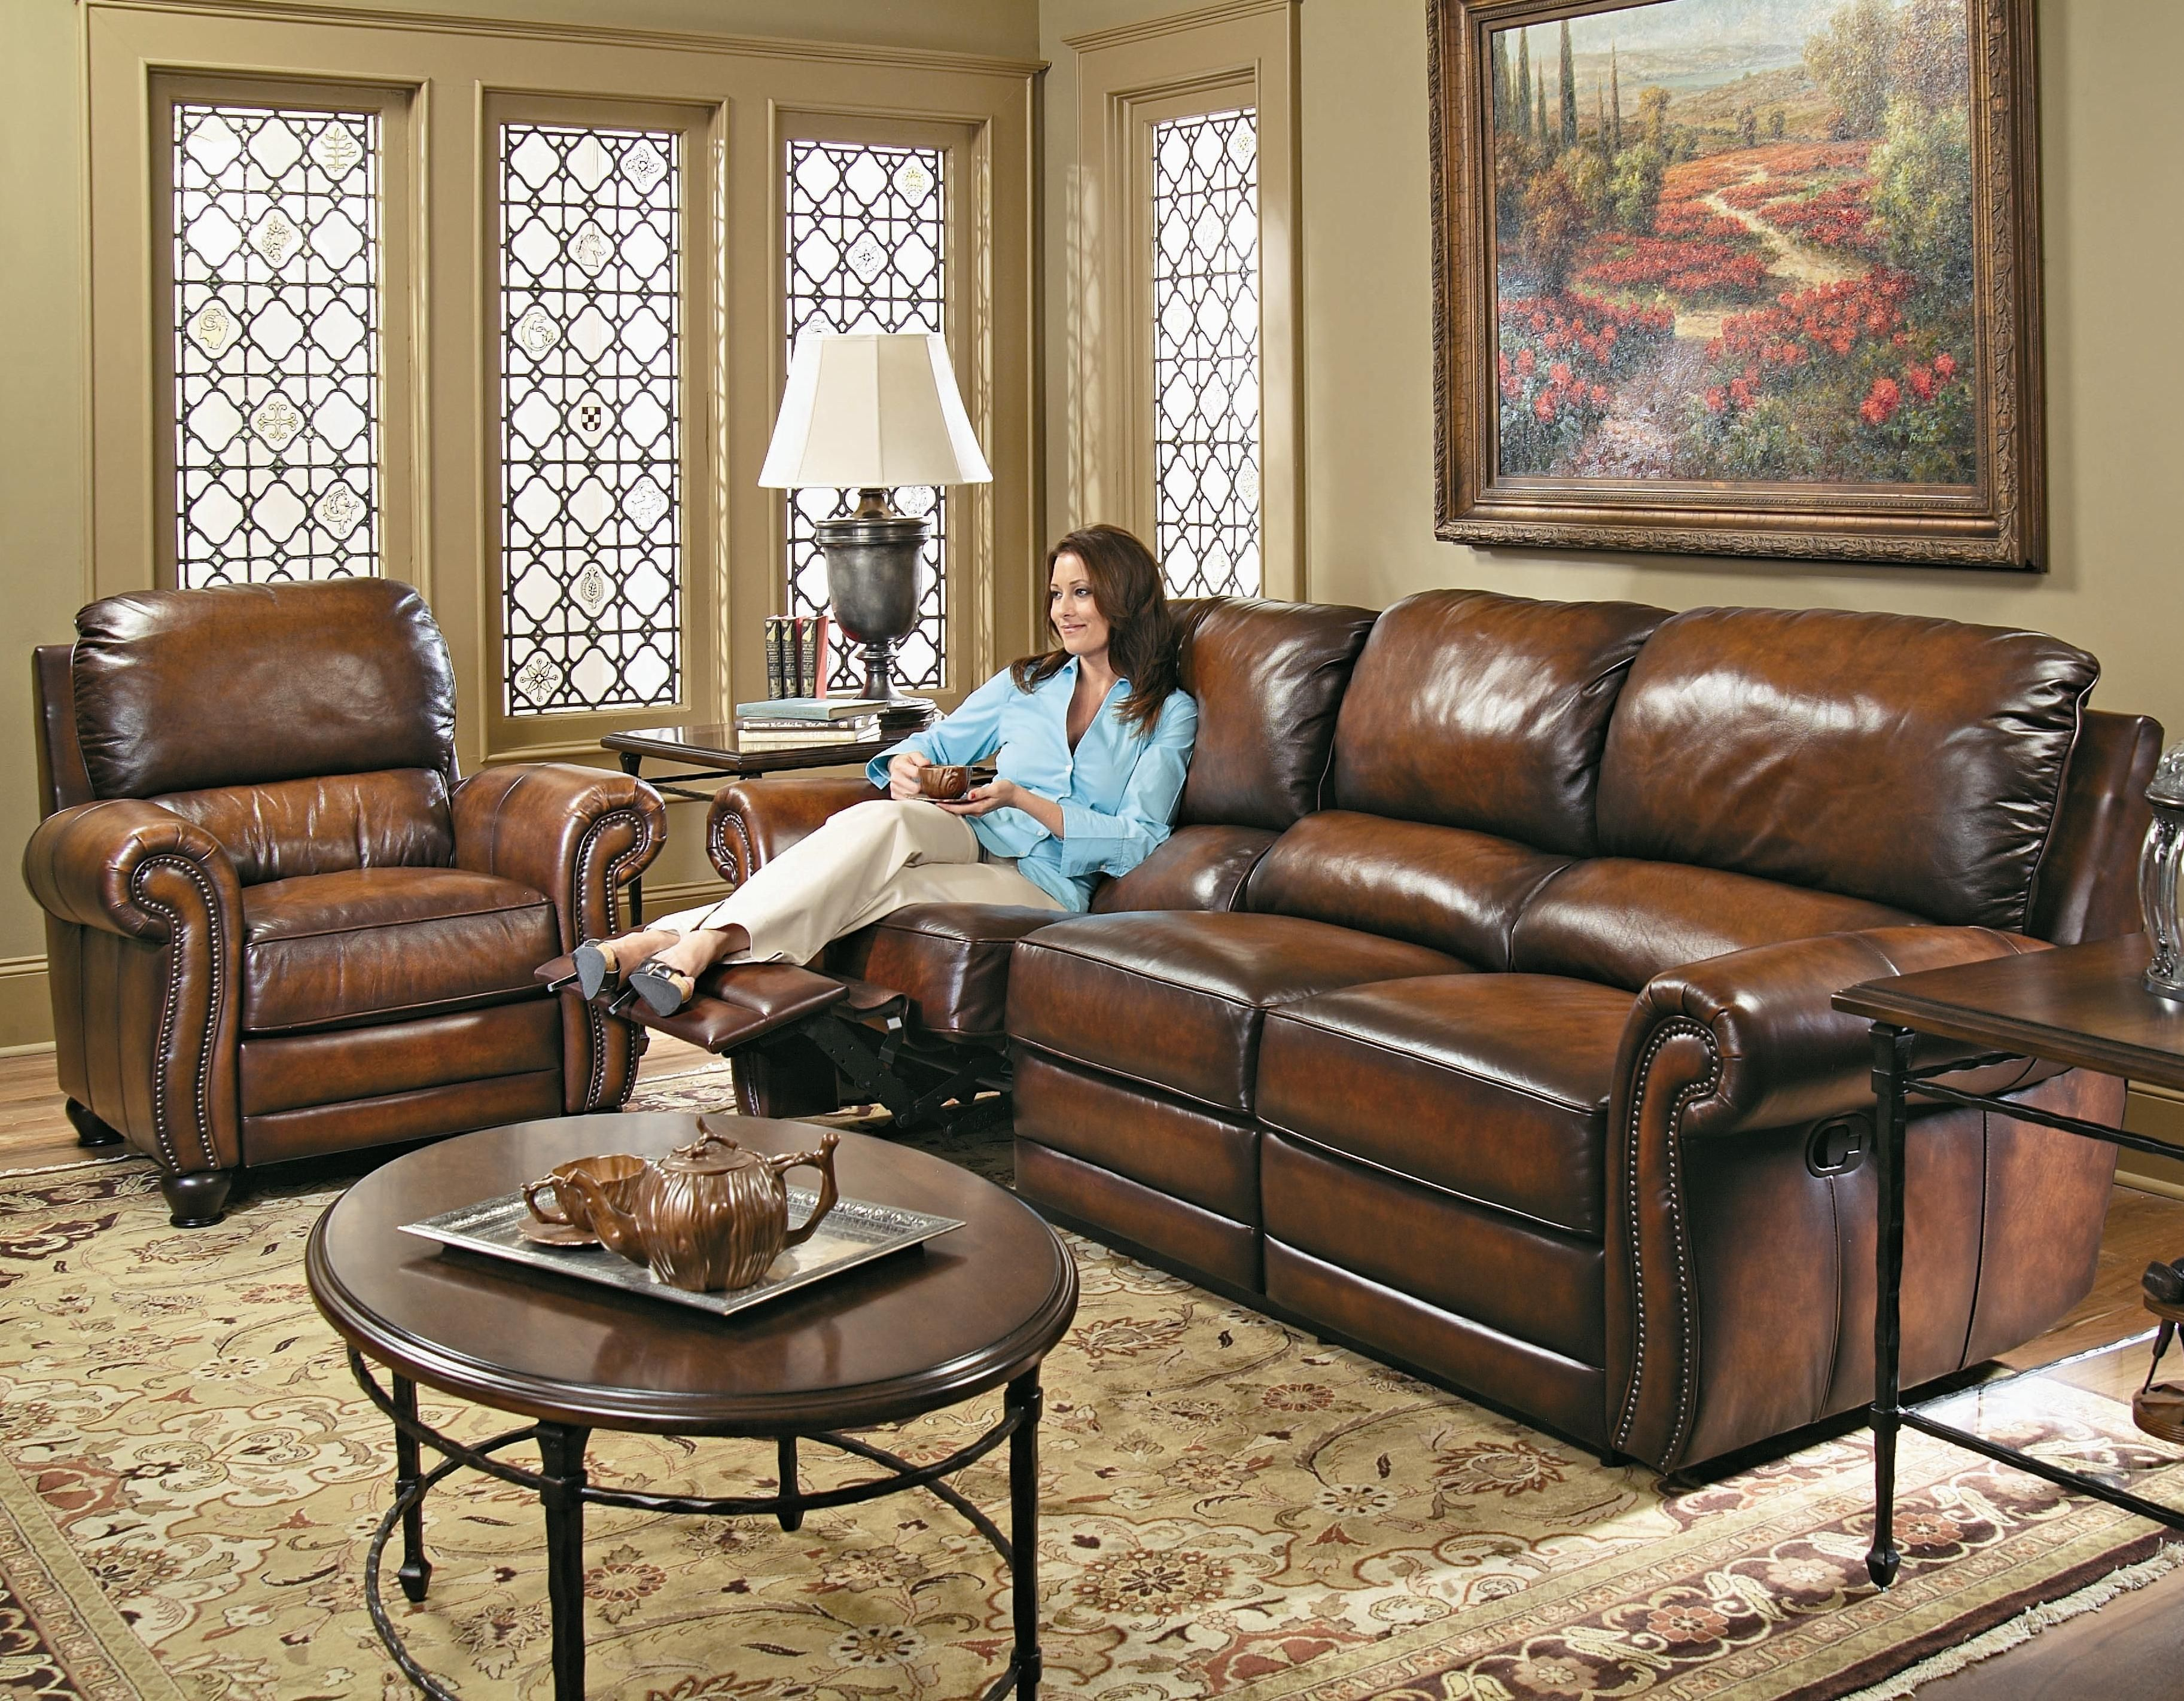 Surprising Reese Leather By Bernhardt Miskelly Furniture Creativecarmelina Interior Chair Design Creativecarmelinacom